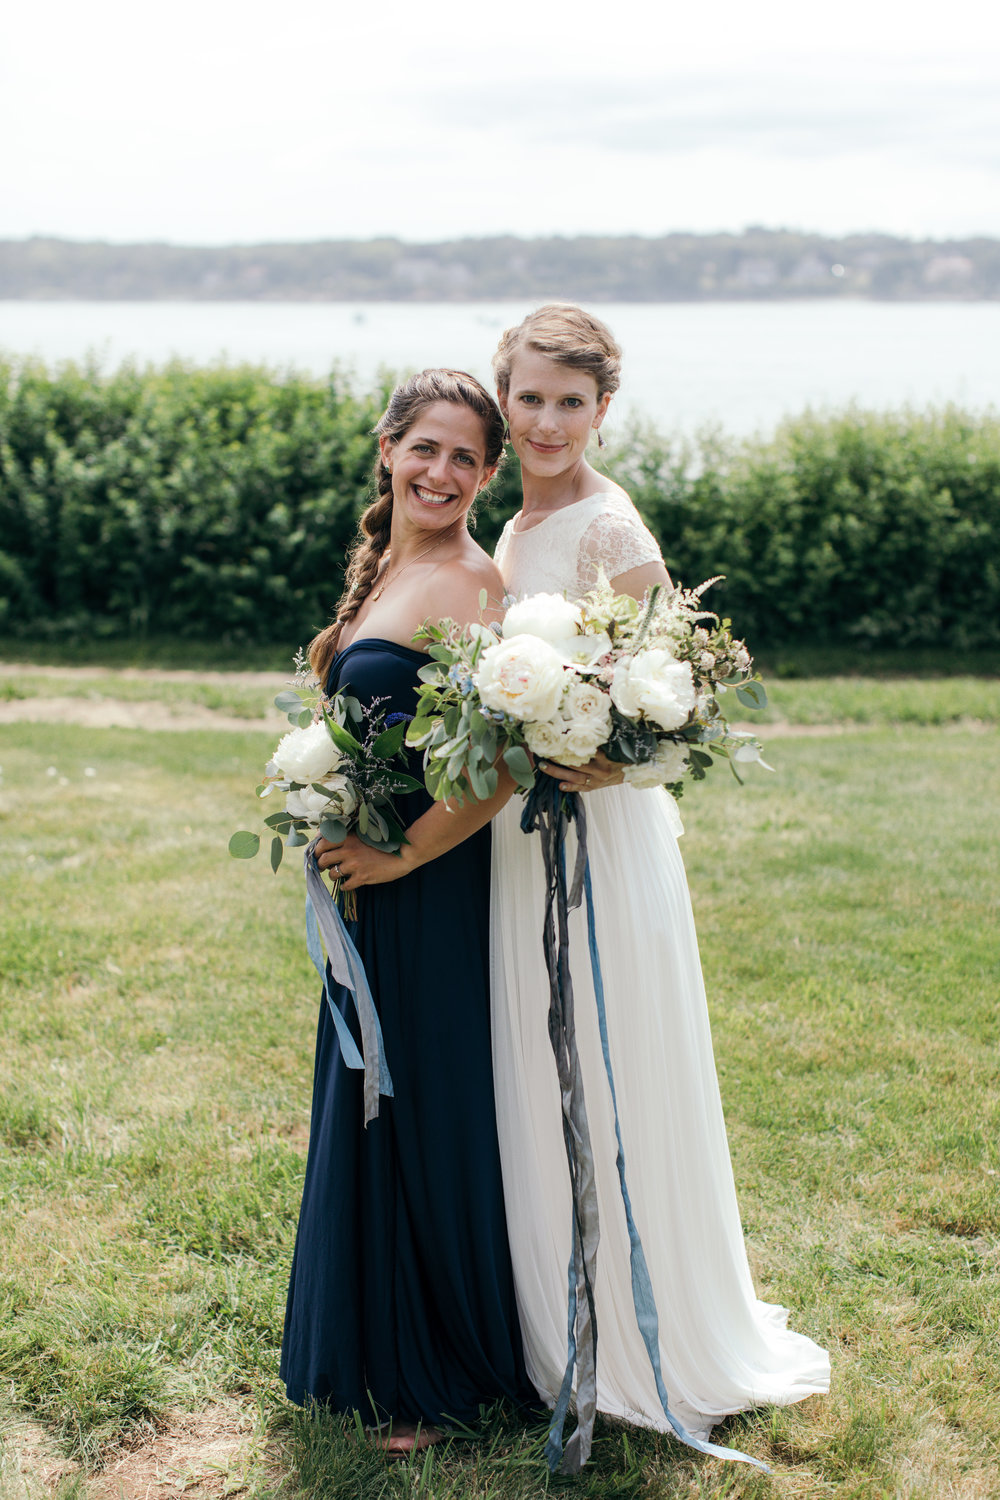 Watershed-Floral-Maine-Island-Wedding-Bridal-Bridesmaid-Bouquet-12.jpg